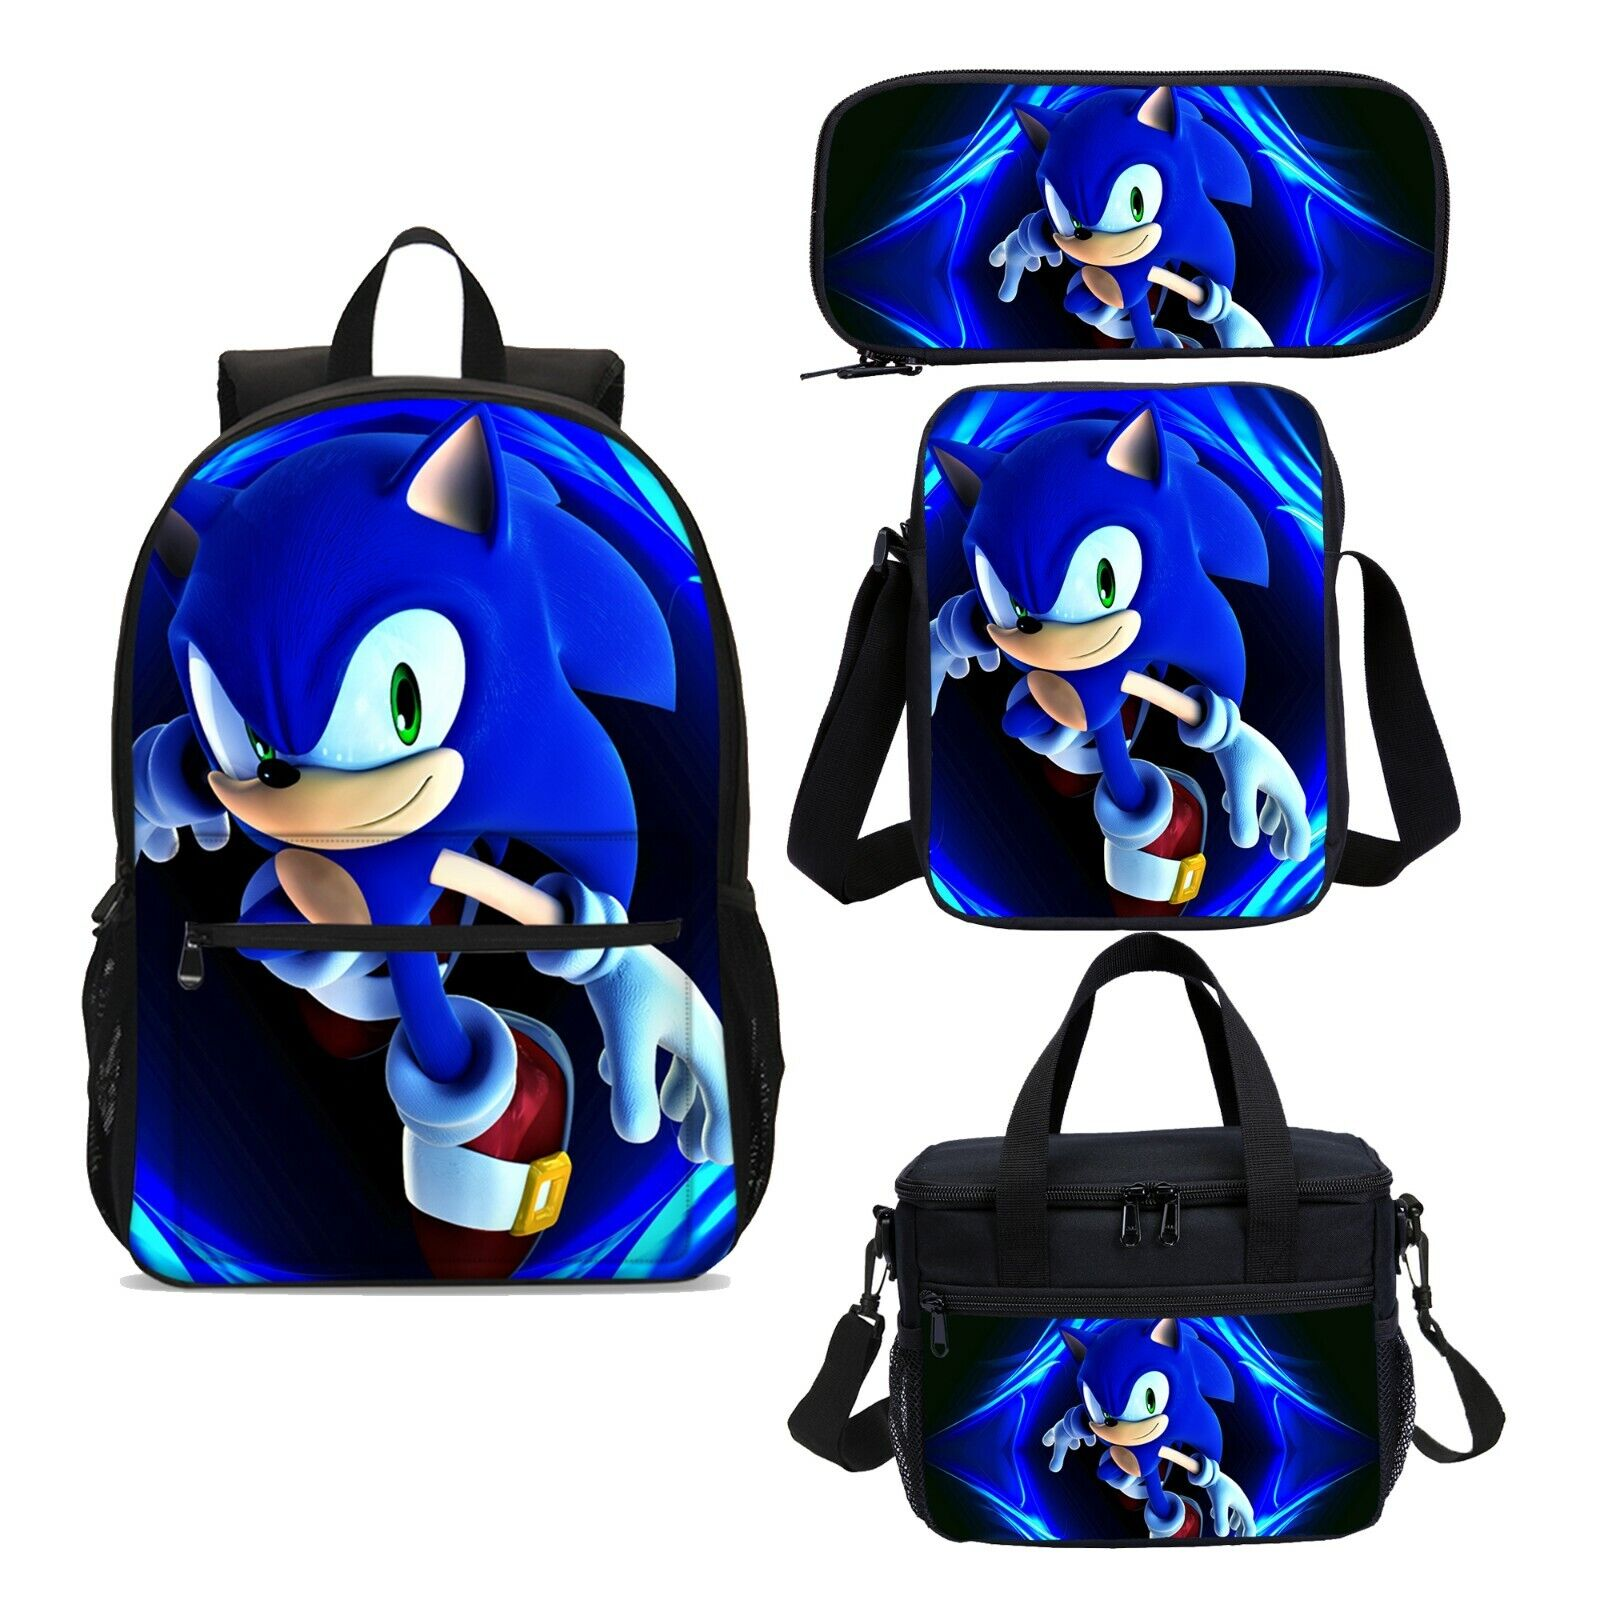 Sonic In A Bag Sonic The Hedgehog Roblox Sonic The Hedgehog Kids School Backpack Lunch Sling Bag Pen Case Boys Gifts Lot Ebay